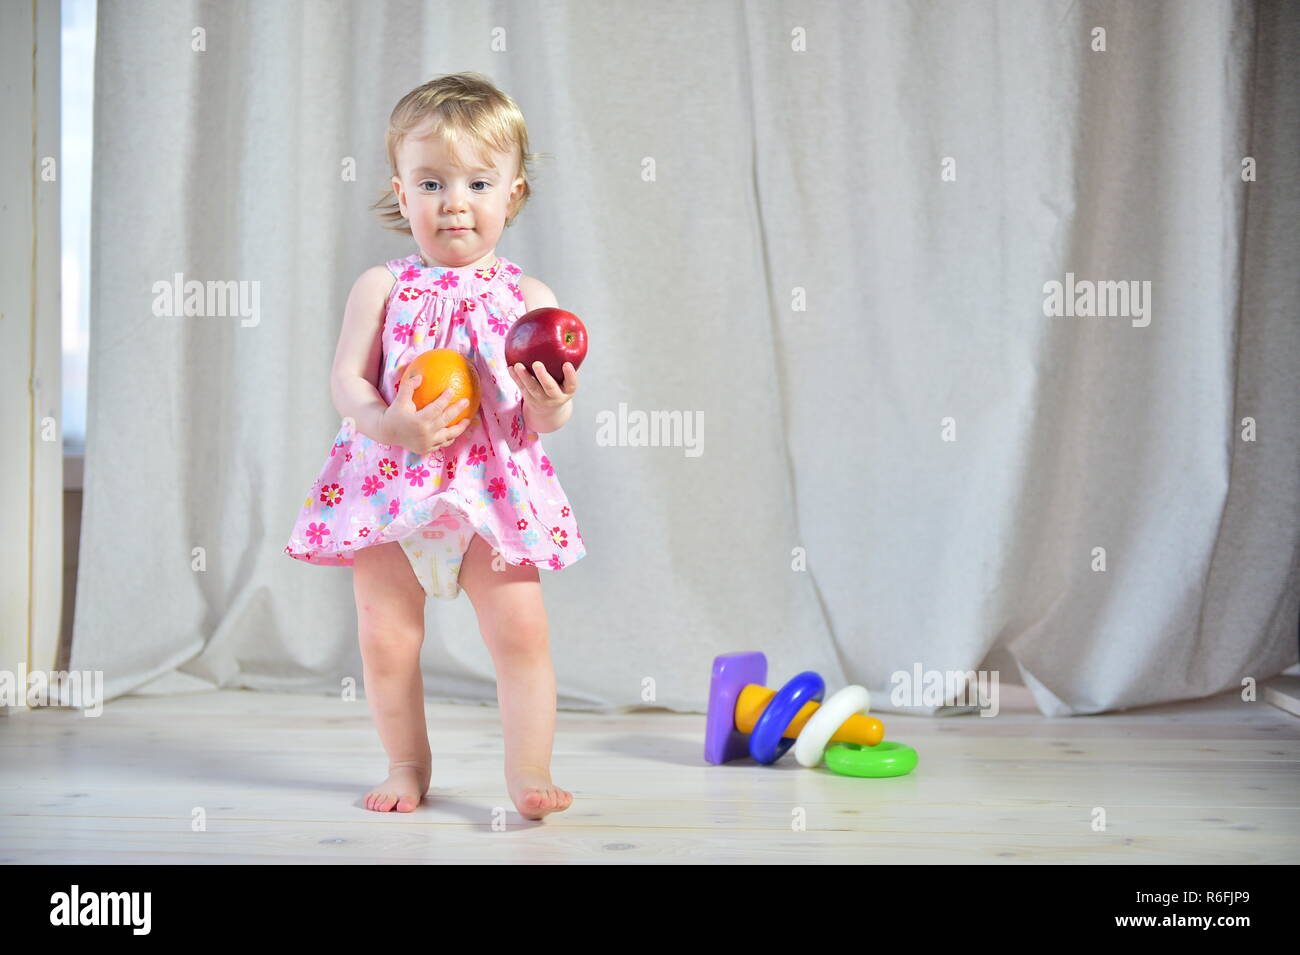 c70b112e9ff Pretty little girl in a pink dress with red apple and orange in hands on a  light background